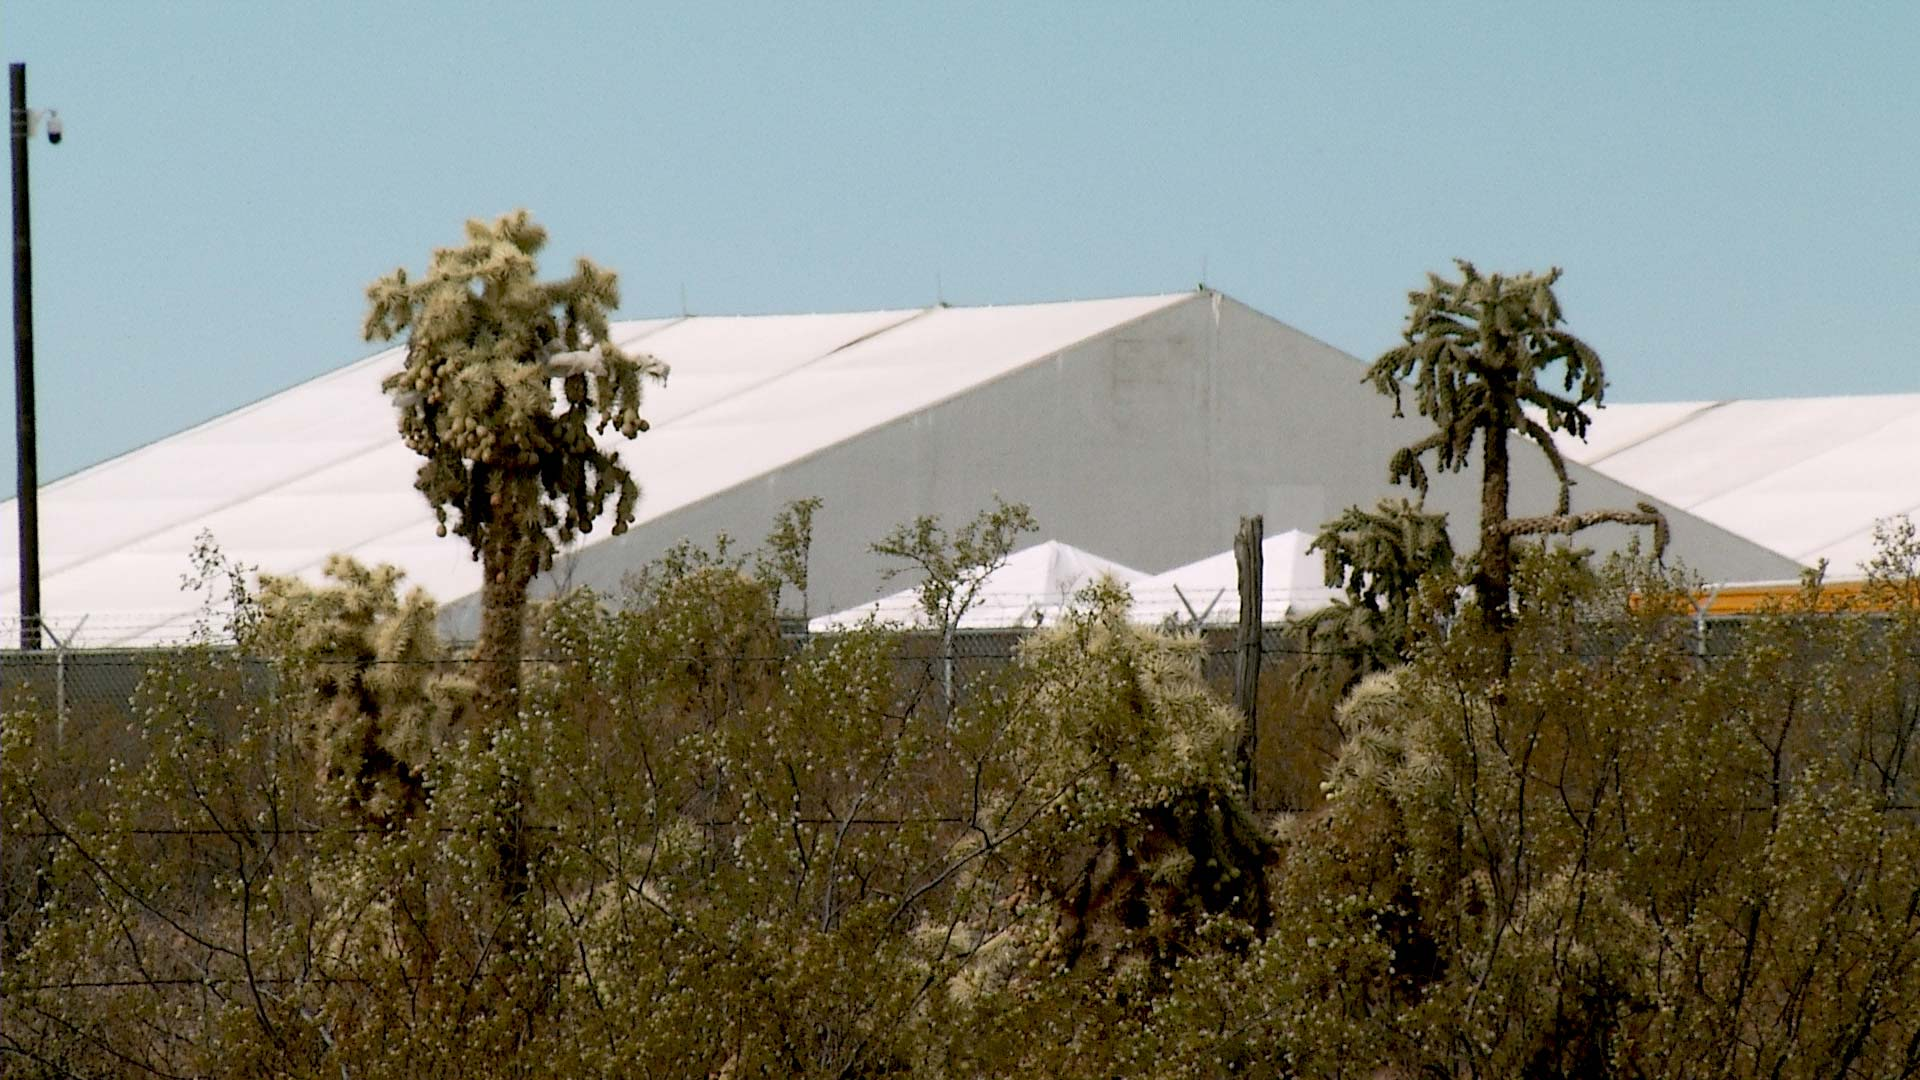 The exterior of a temporary, tent facility run by Border Patrol for unaccompanied children in unincorporated Pima County. April 2021.